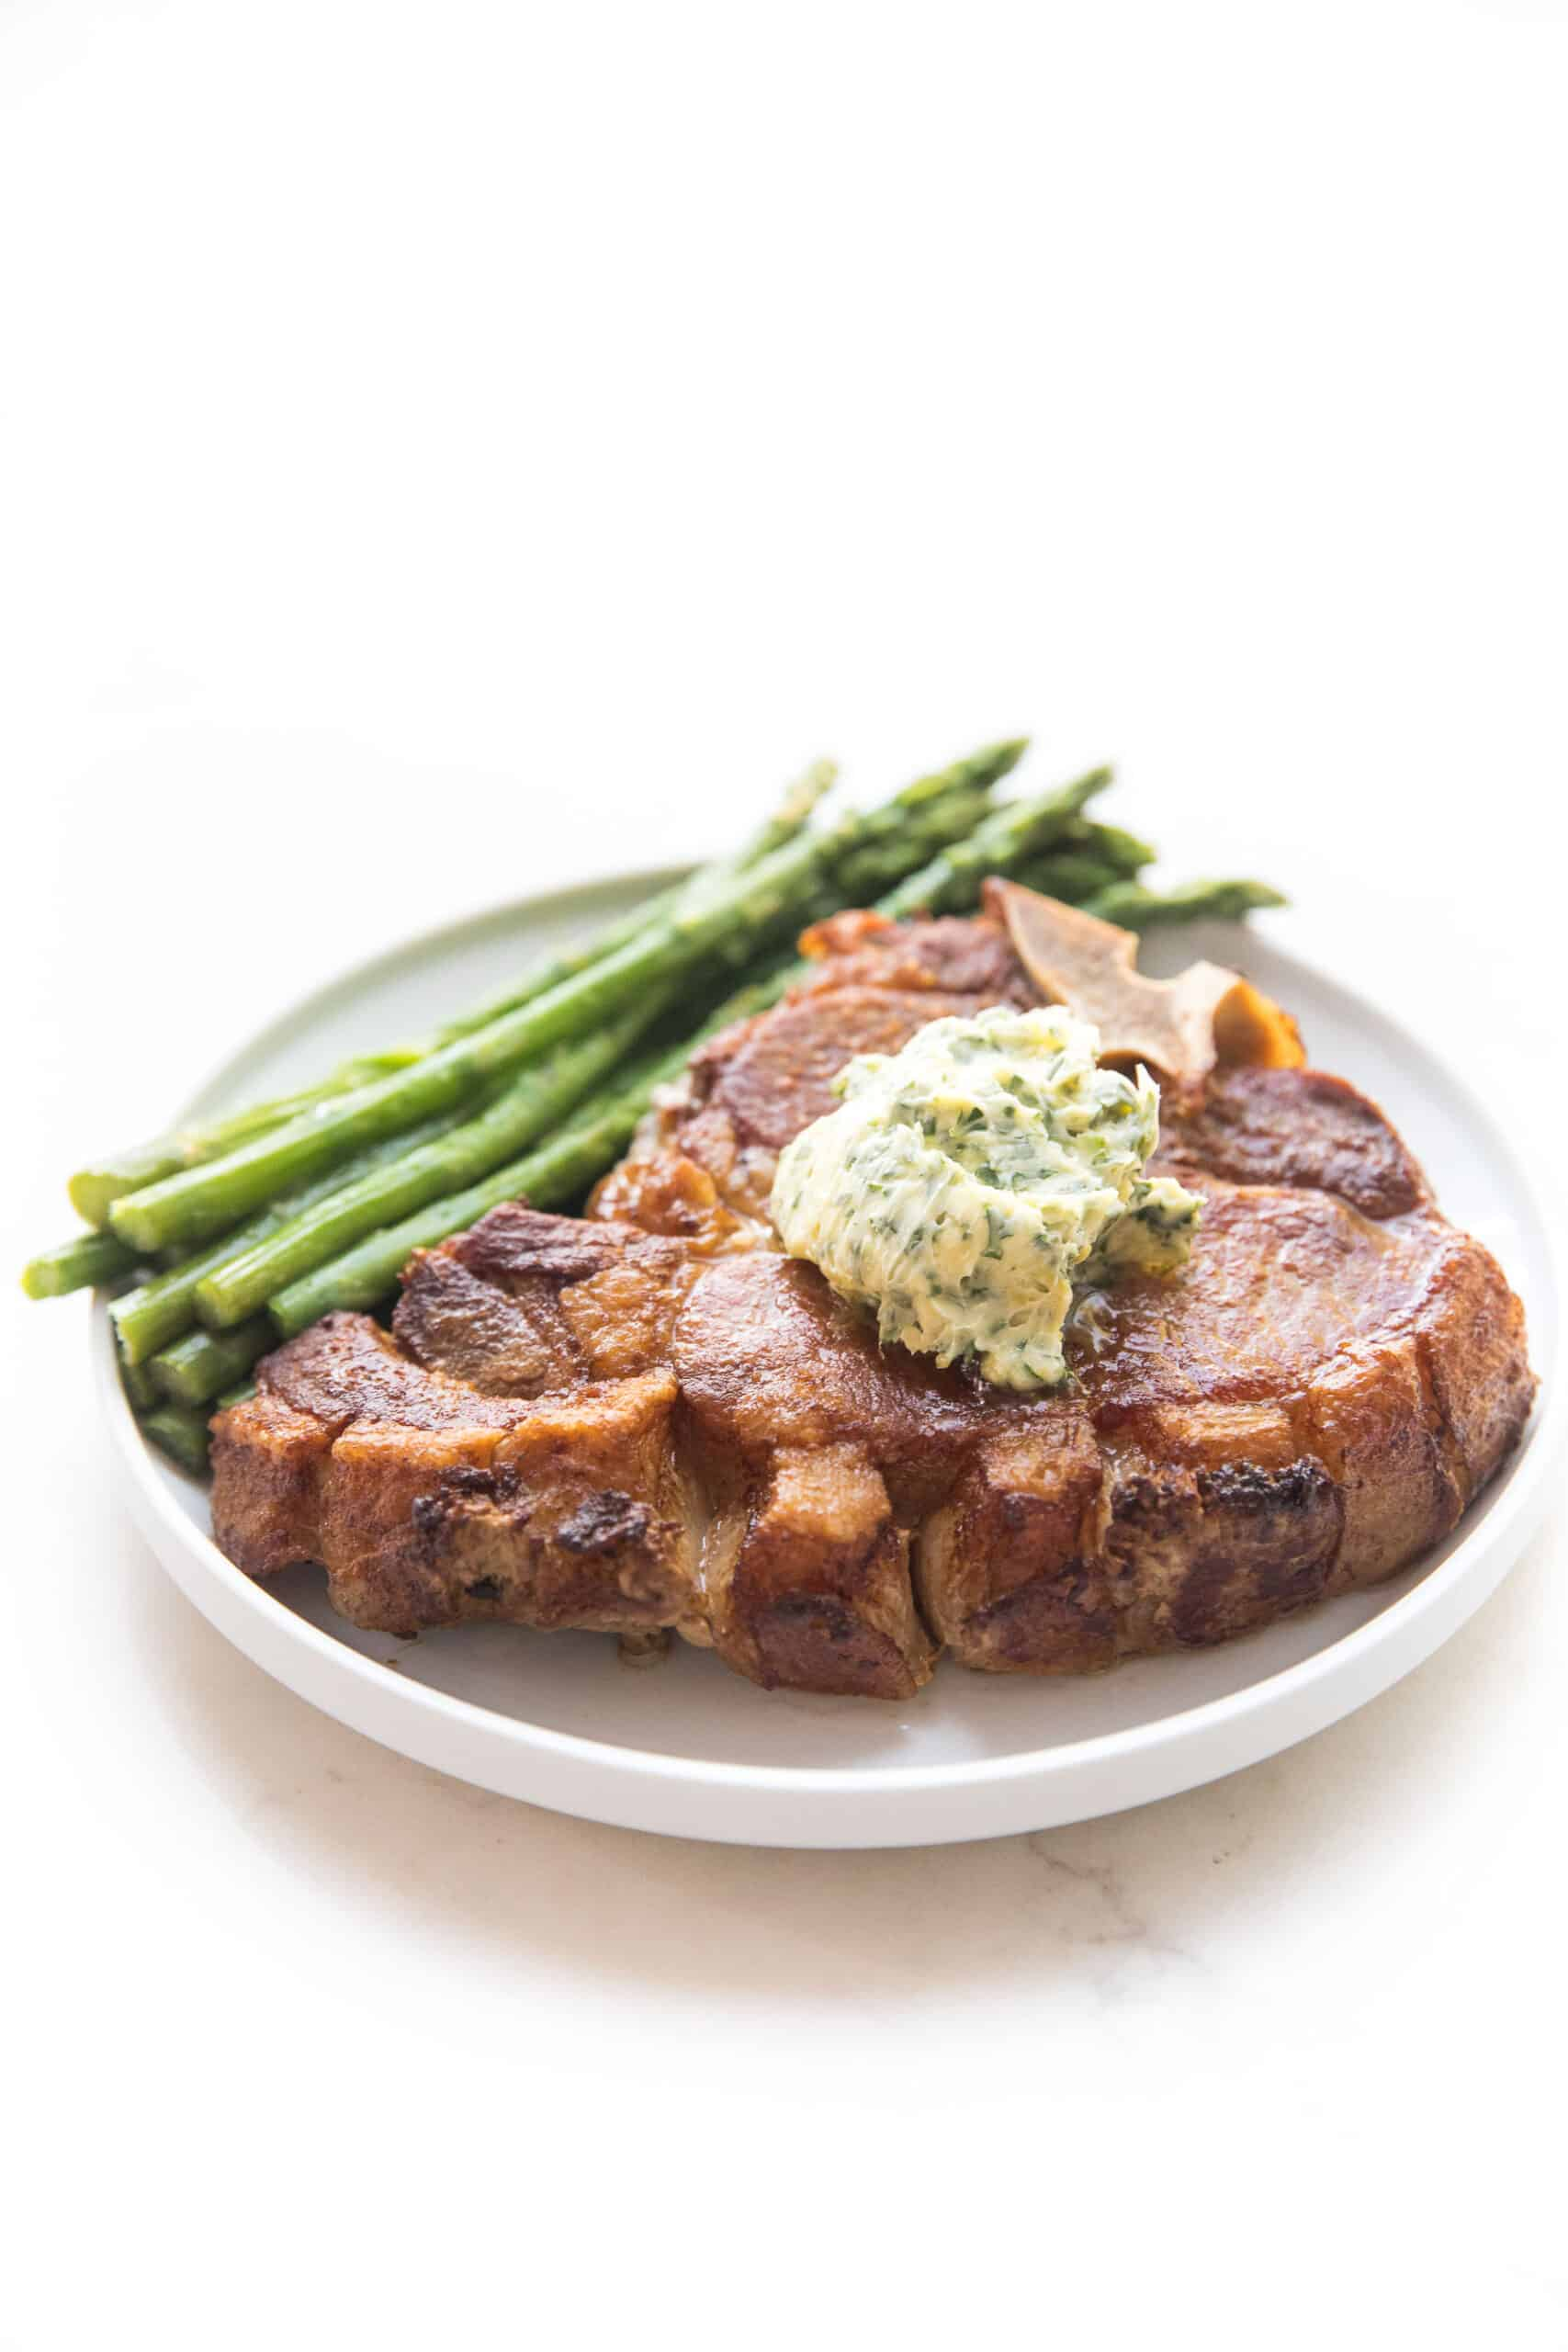 pork chop topped with herb butter with parsley and asparagus on a white plate and background